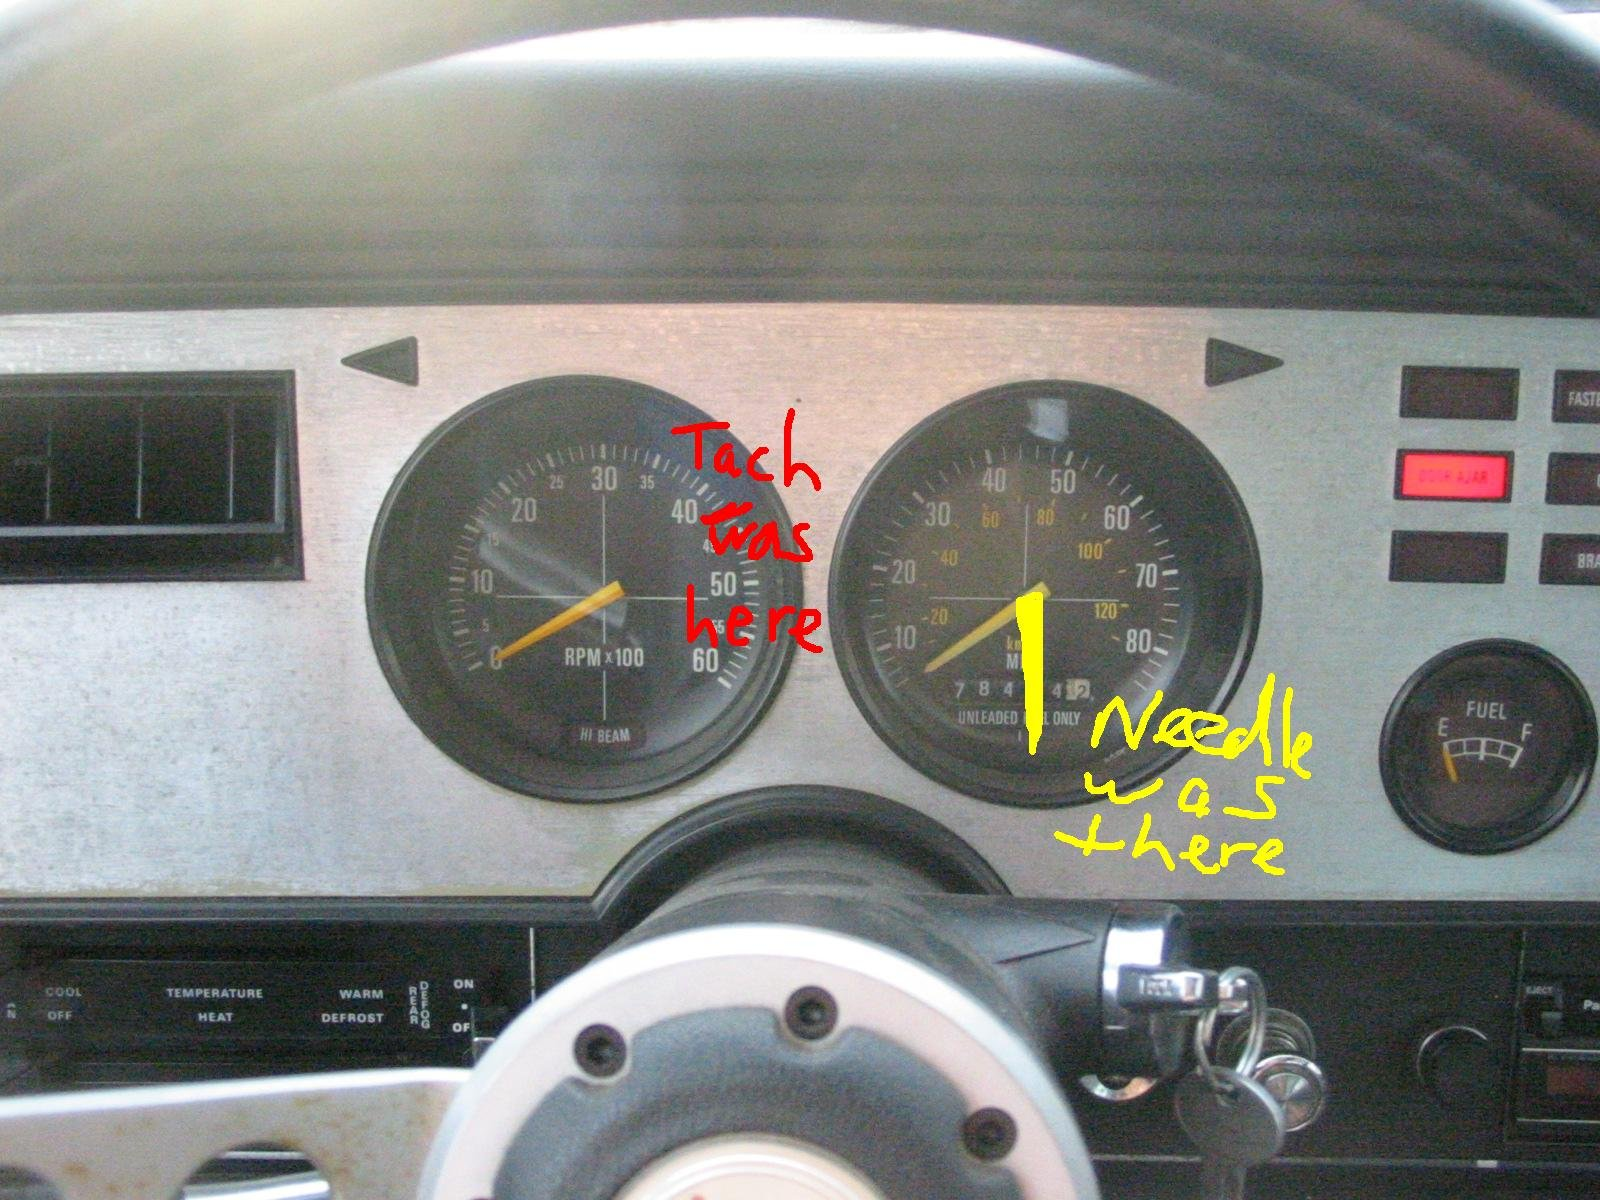 80mph Speedo in 1977 Mustang